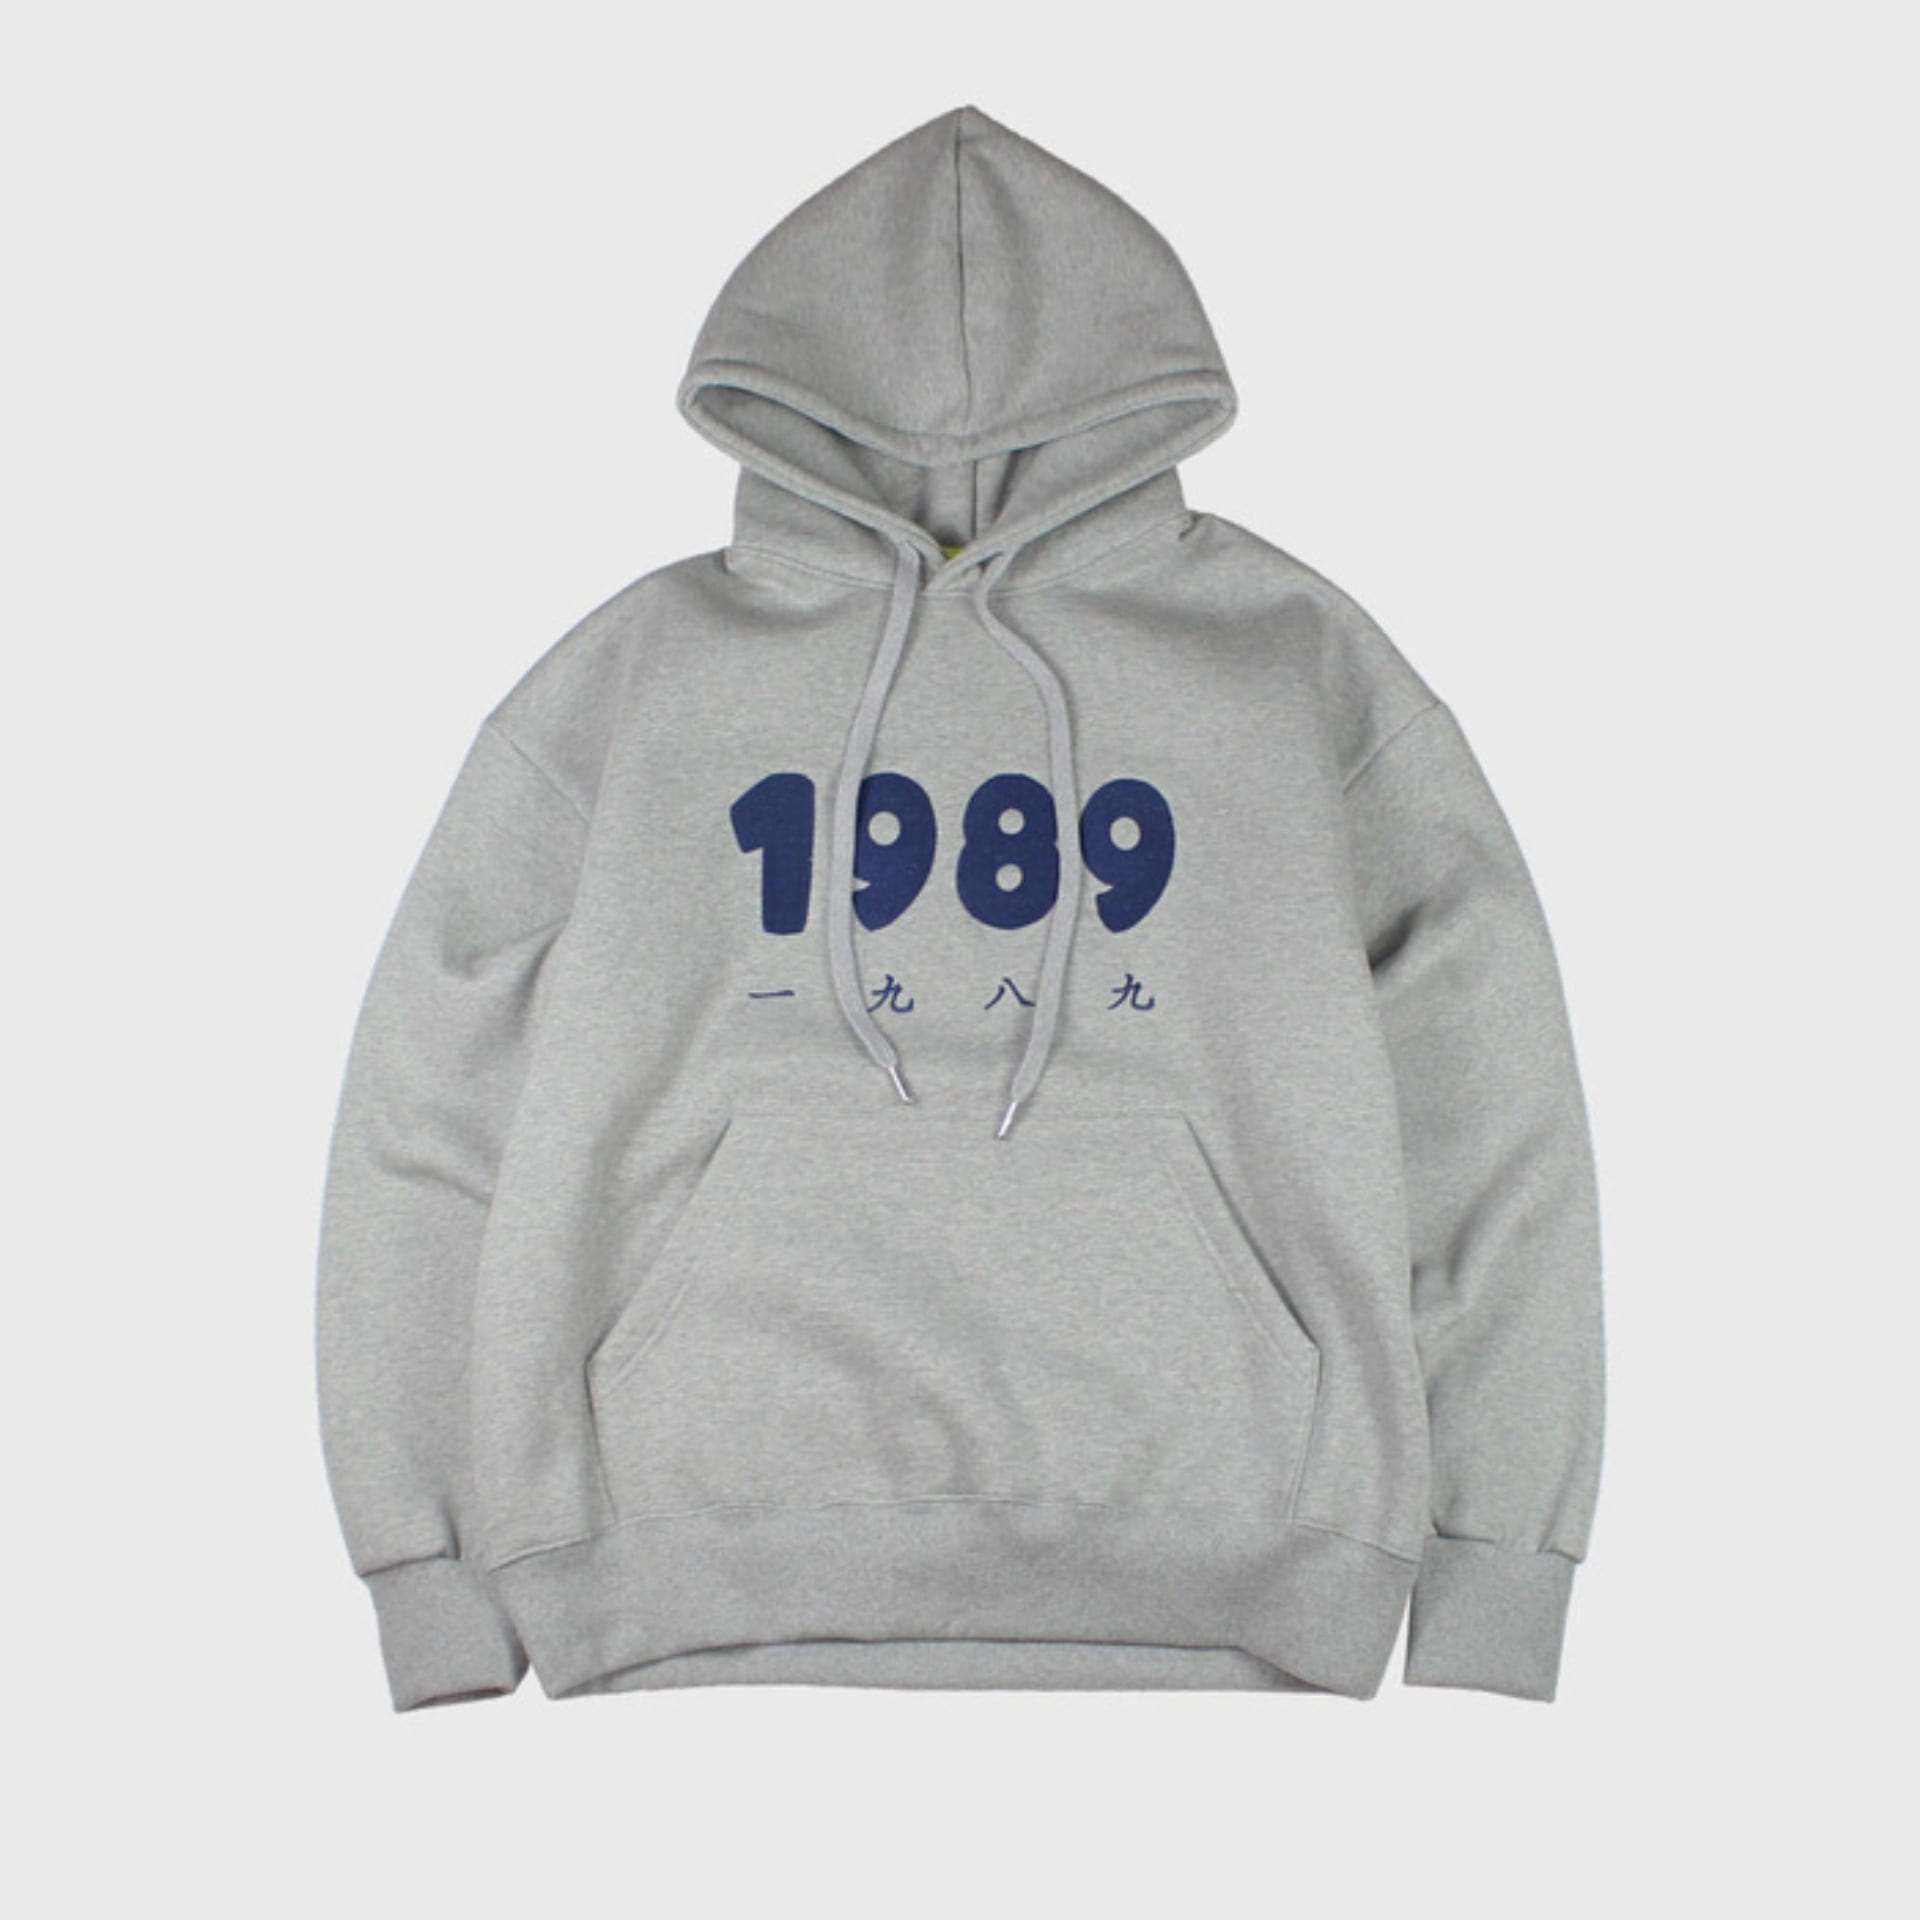 1989 HD SWEAT (Gray)